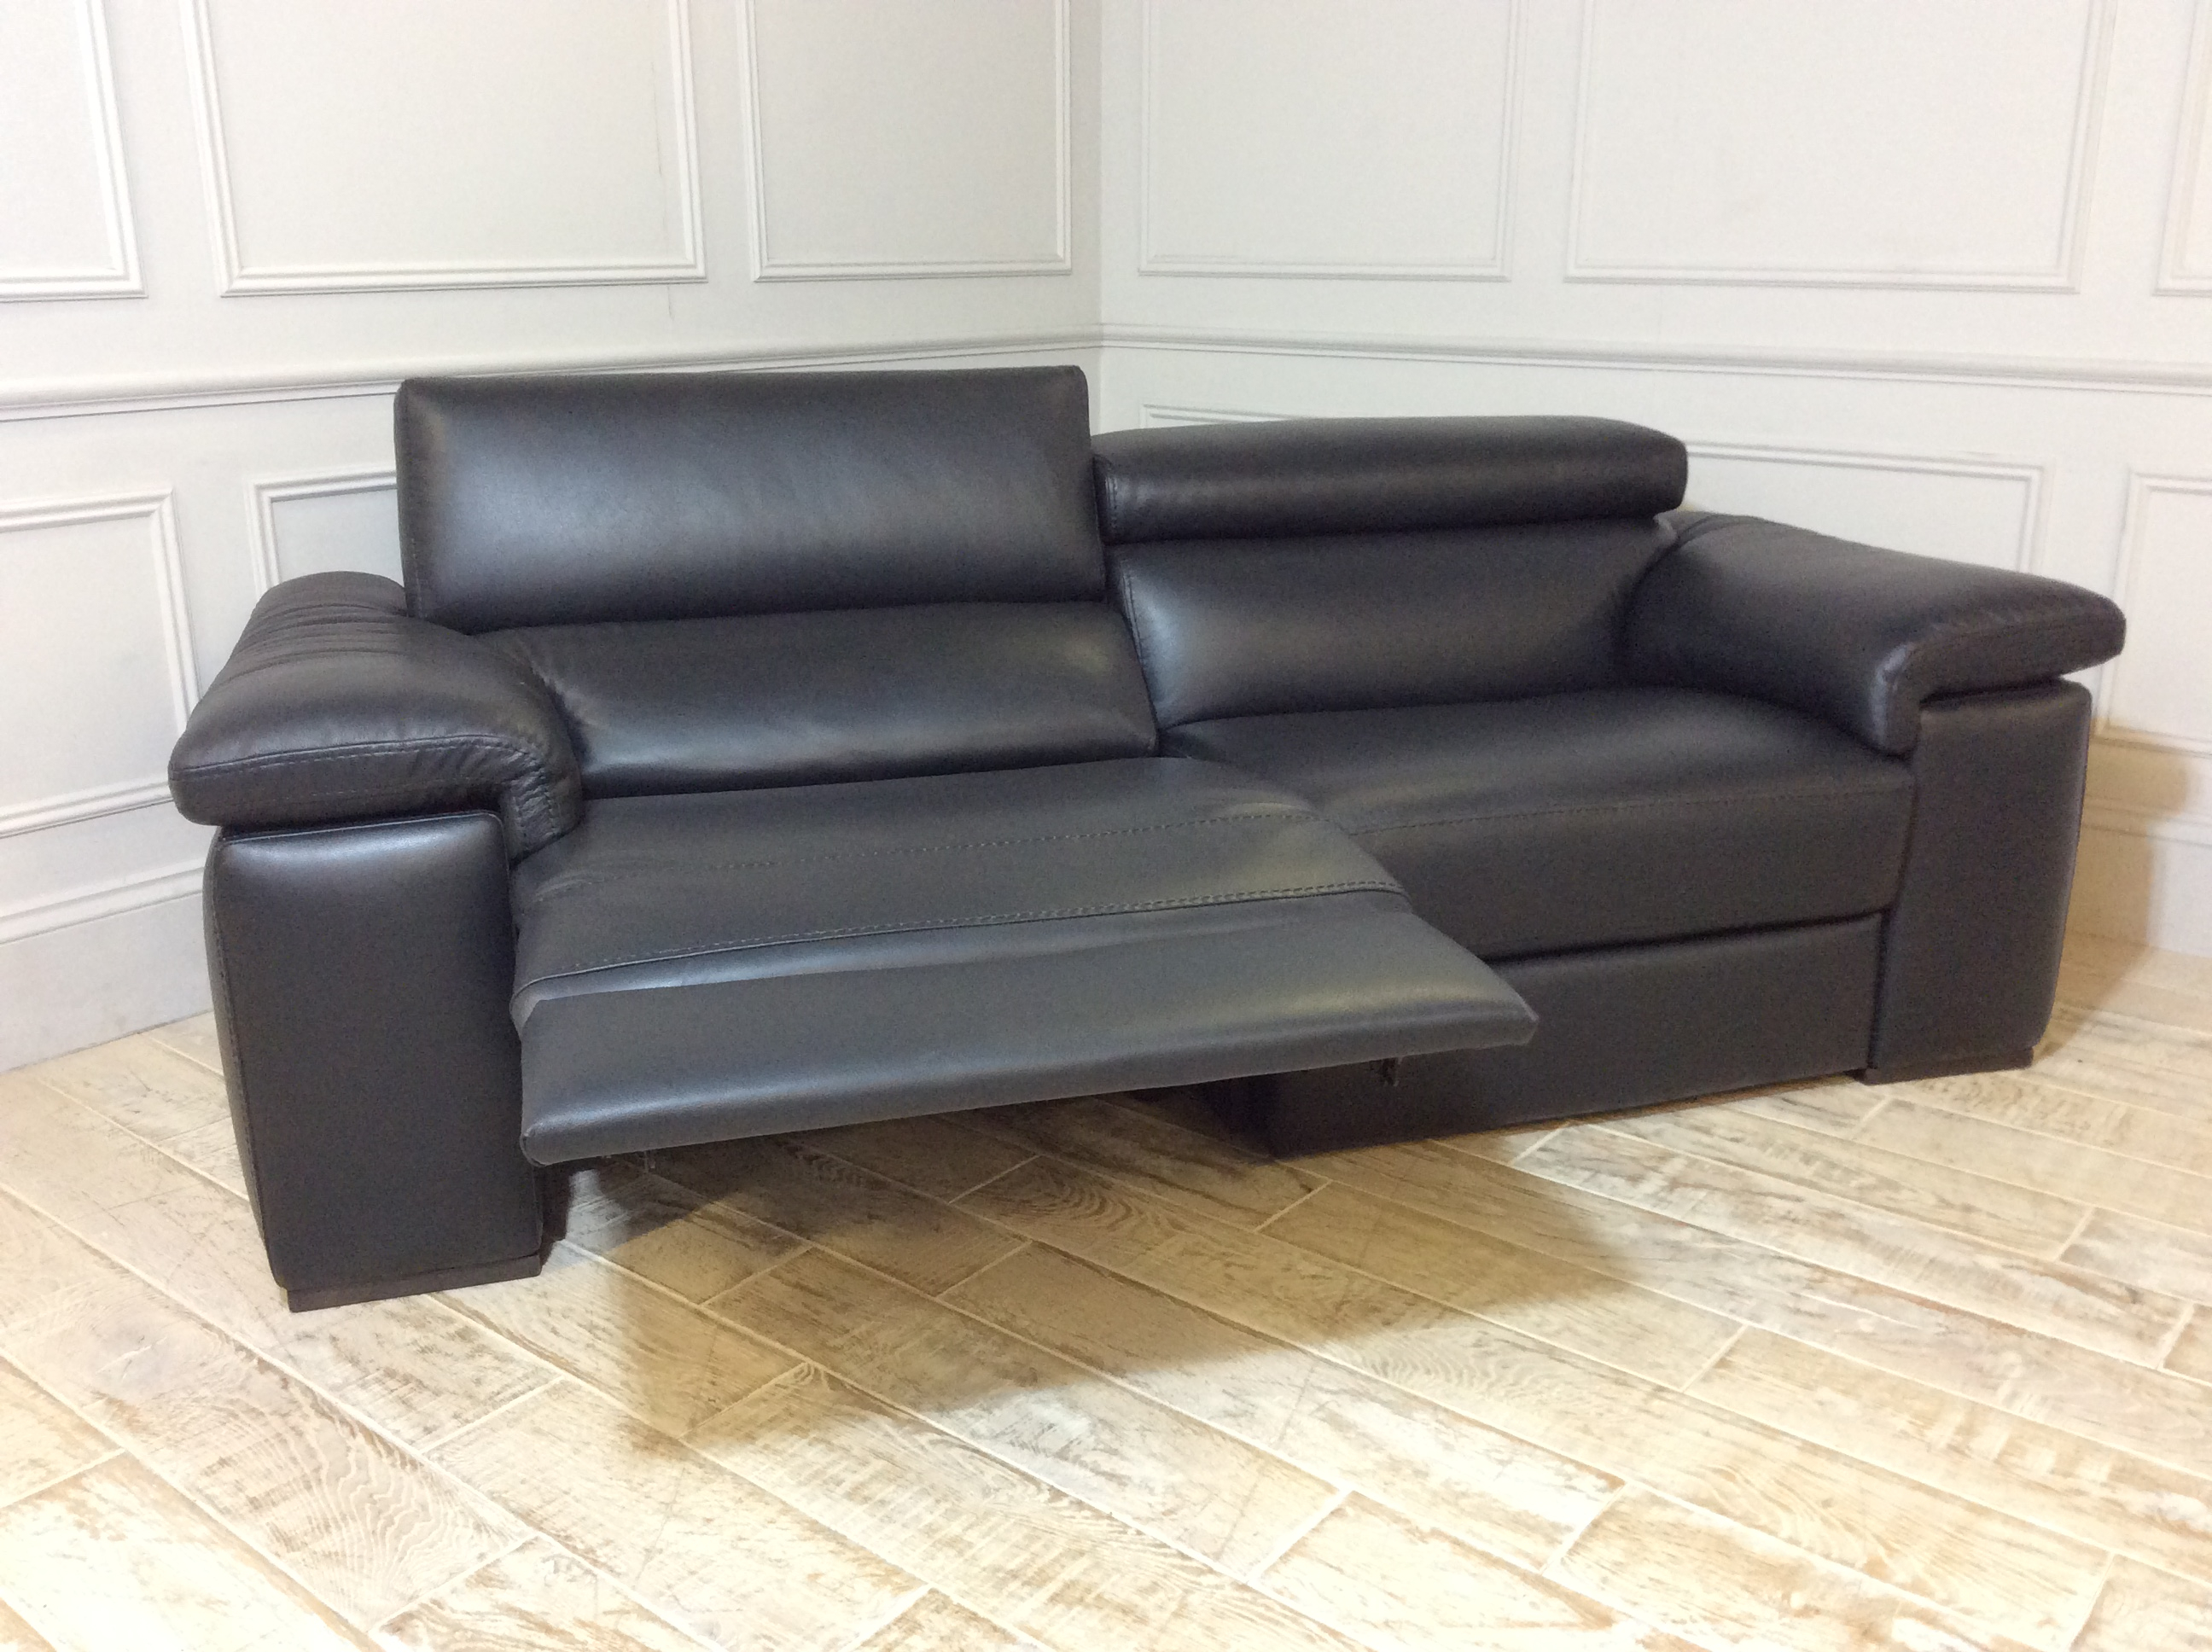 Fabio 3 Seater Sofa with Electric Recliner & Headrest in 1576